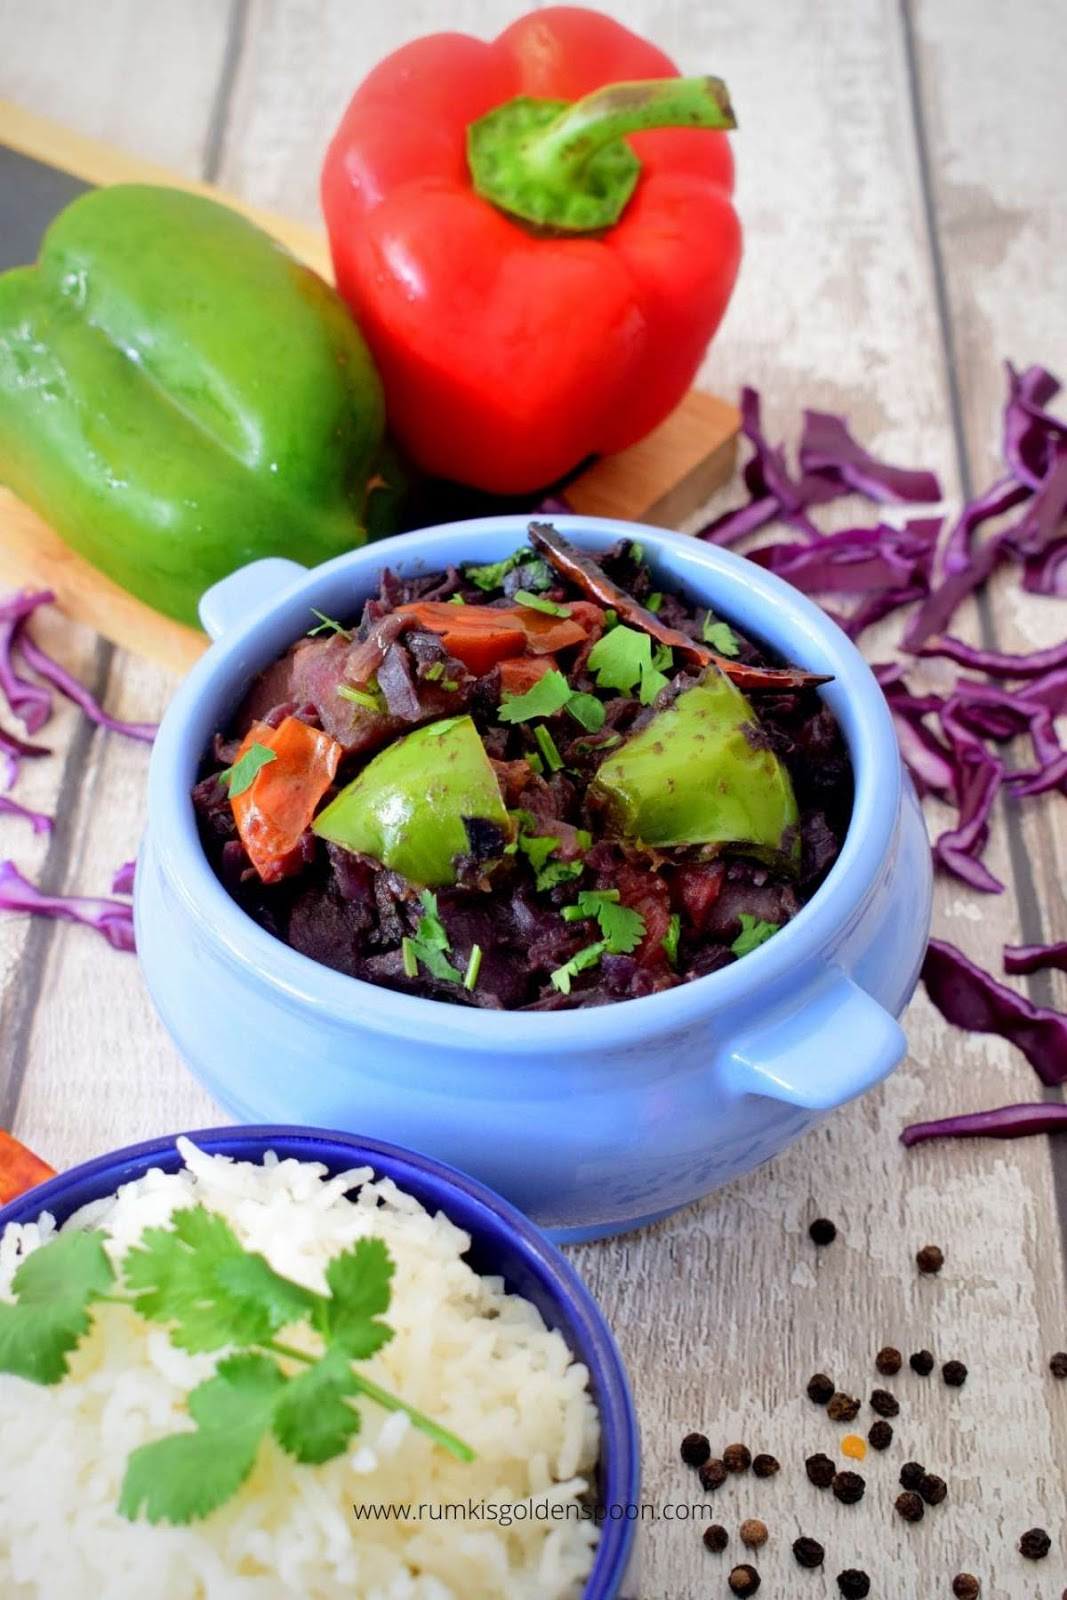 red cabbage sabzi, red cabbage recipe indian, red cabbage recipes indian, purple cabbage recipe indian, red cabbage curry, red cabbage north indian recipe, Red Cabbage recipes vegan, how to cook red cabbage, braised red cabbage recipe, braised red cabbage, benefits of red cabbage, red cabbage recipe, red cabbage recipes, red cabbage recipe simple, red cabbage recipe braised, red cabbage recipe healthy, red cabbage recipes indian style, red cabbage fry, red cabbage potato curry, purple cabbage curry, red cabbage recipe indian style, red cabbage curry indian recipe, red cabbage stir fry vegetarian, red cabbage curry recipe, red cabbage curry Indian, Rumki's Golden Spoon